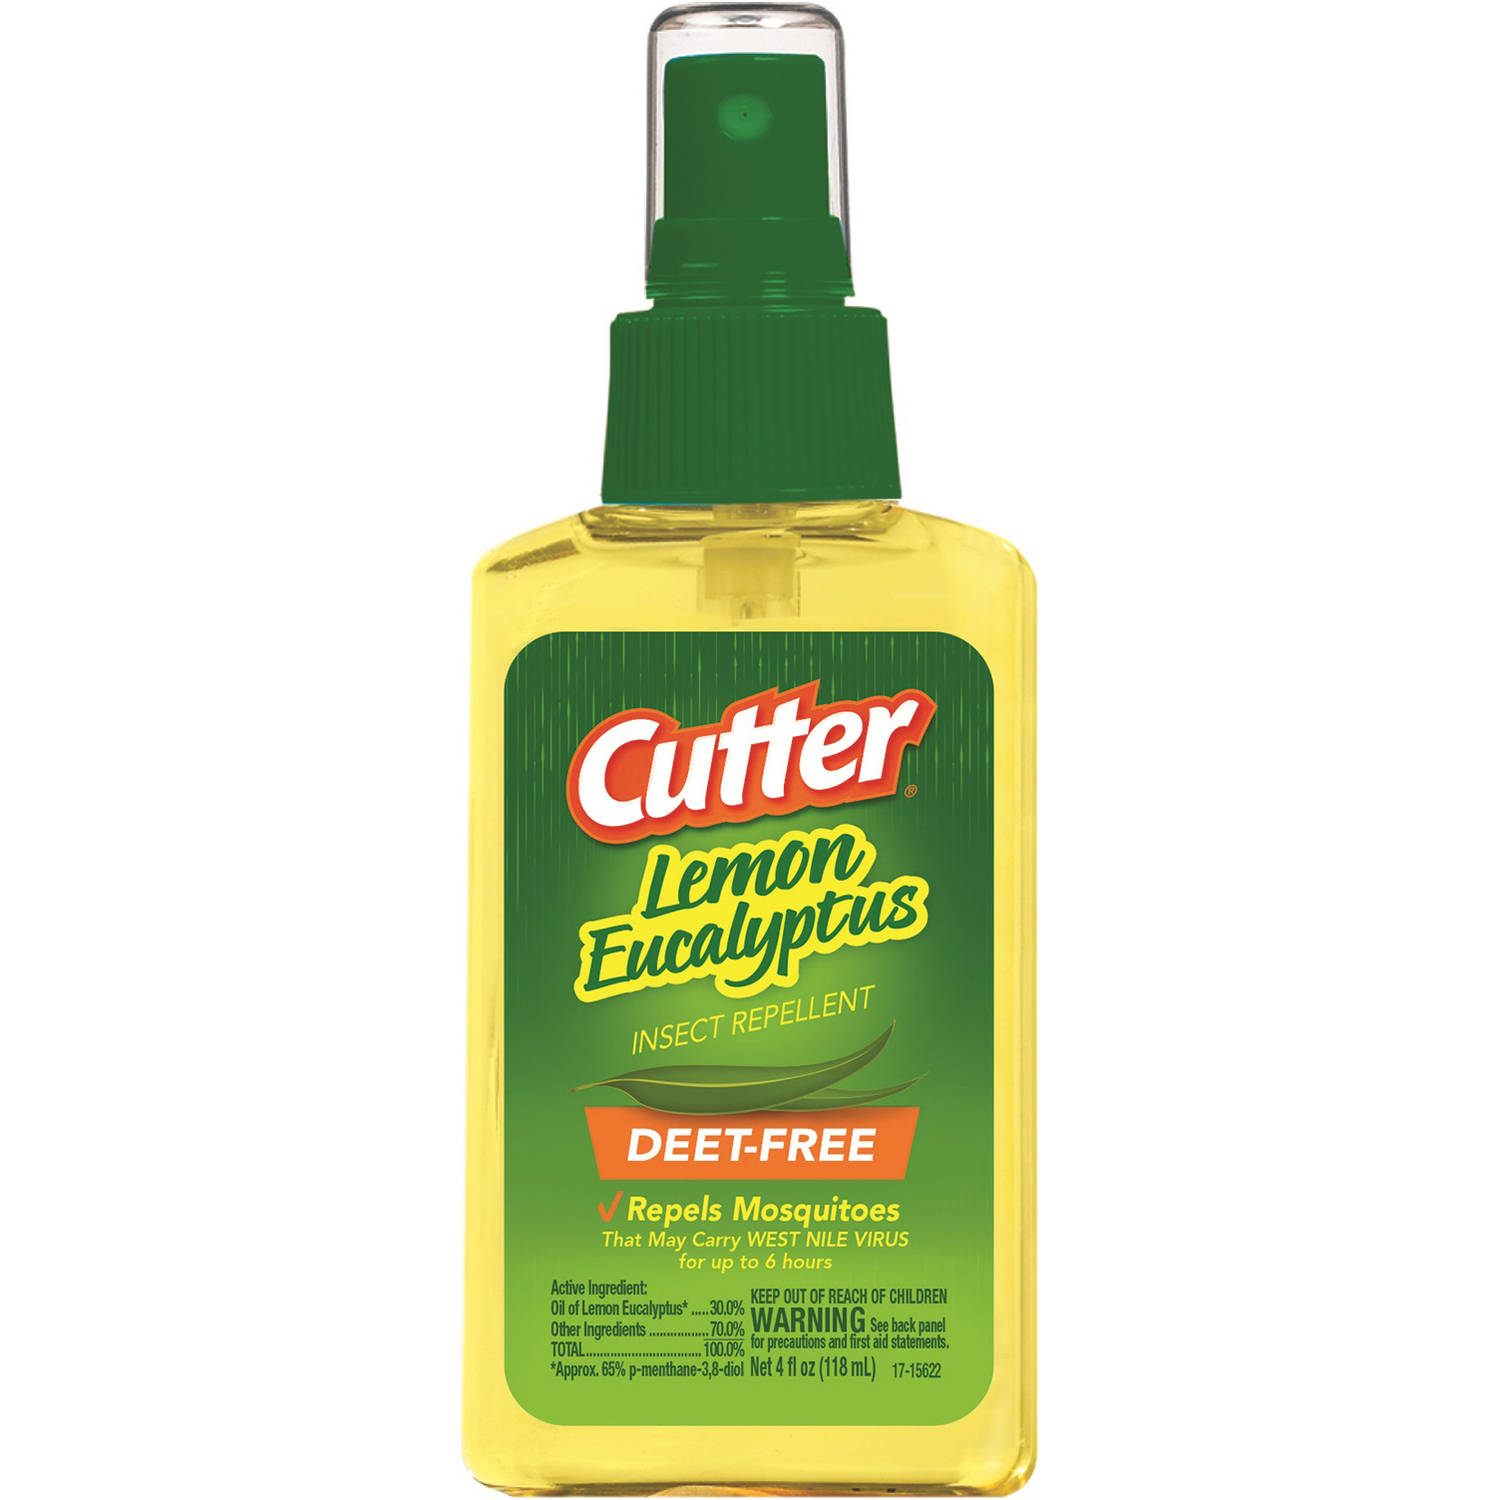 Cutter Lemon Eucalyptus Insect Repellent (Pump Spray) (HG-96014)